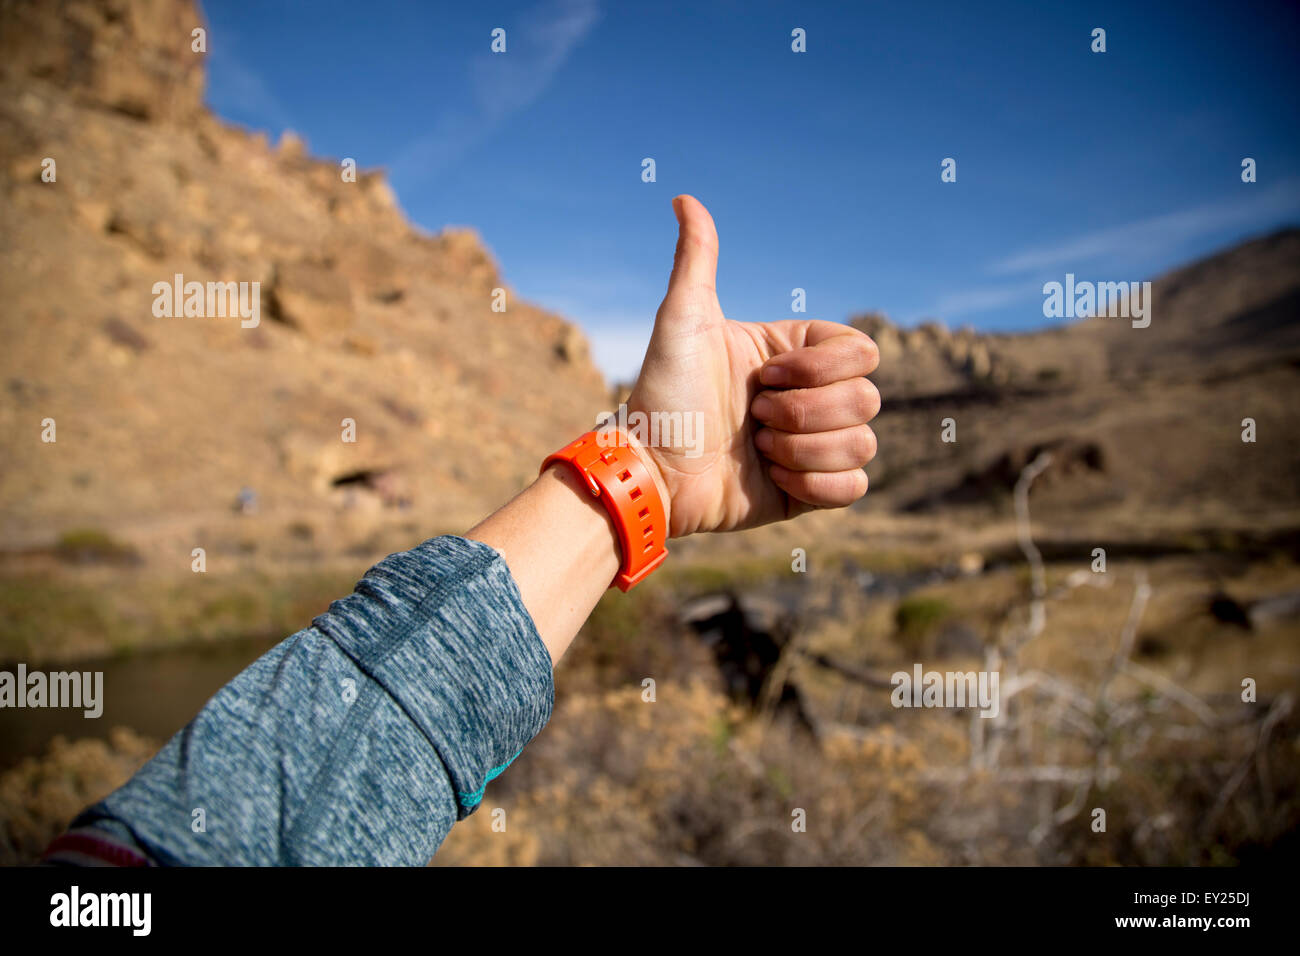 Thumbs up, Smith Rock State Park, Oregon, US - Stock Image